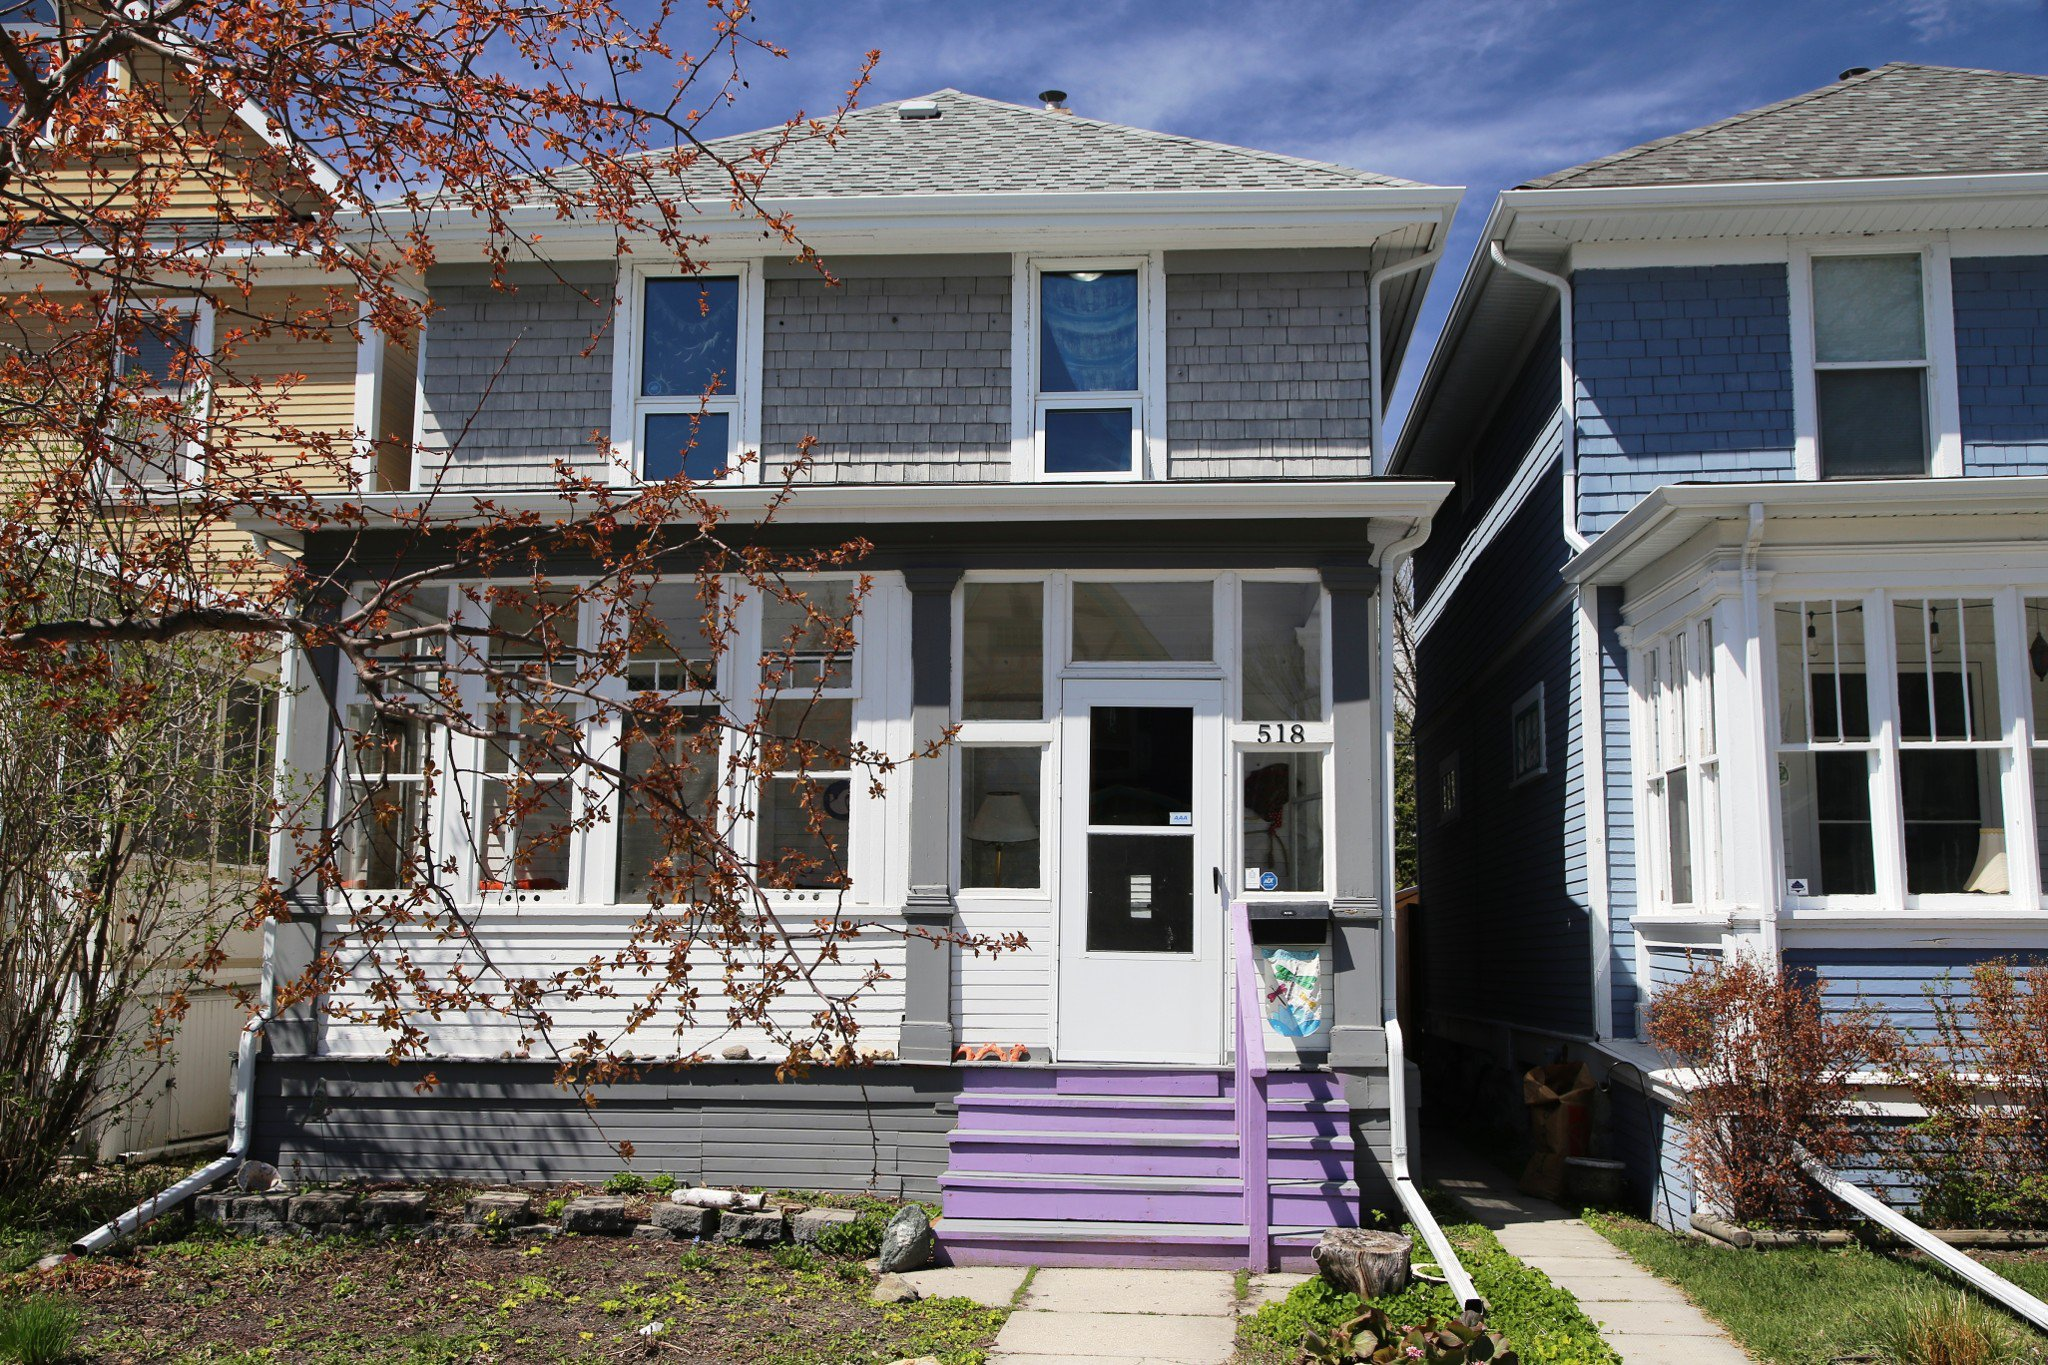 Welcome to 518 Camden Pl. in Wolseley